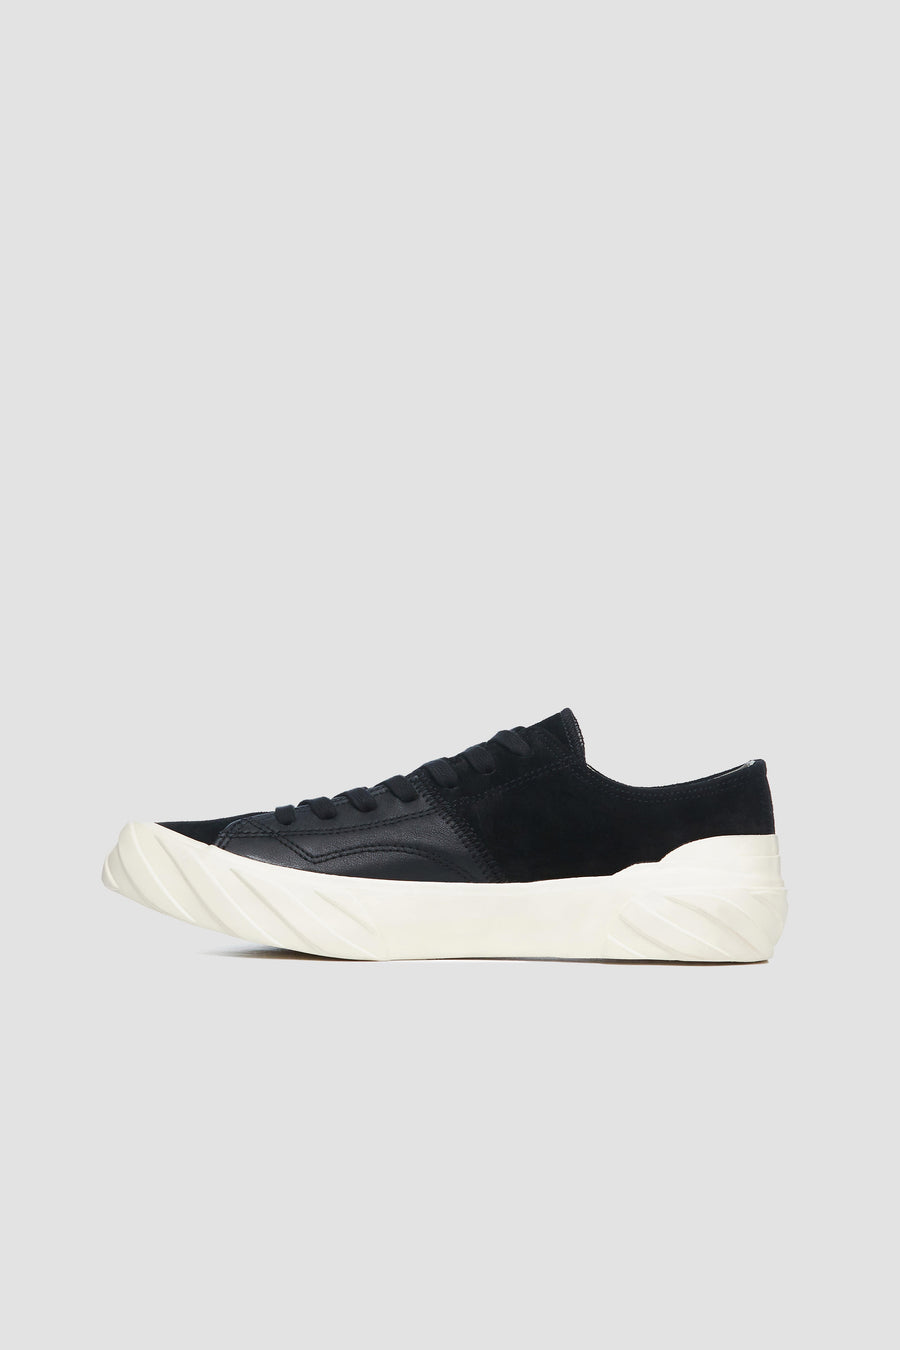 AGE - Low-Cut Leather and Suede Sneakers